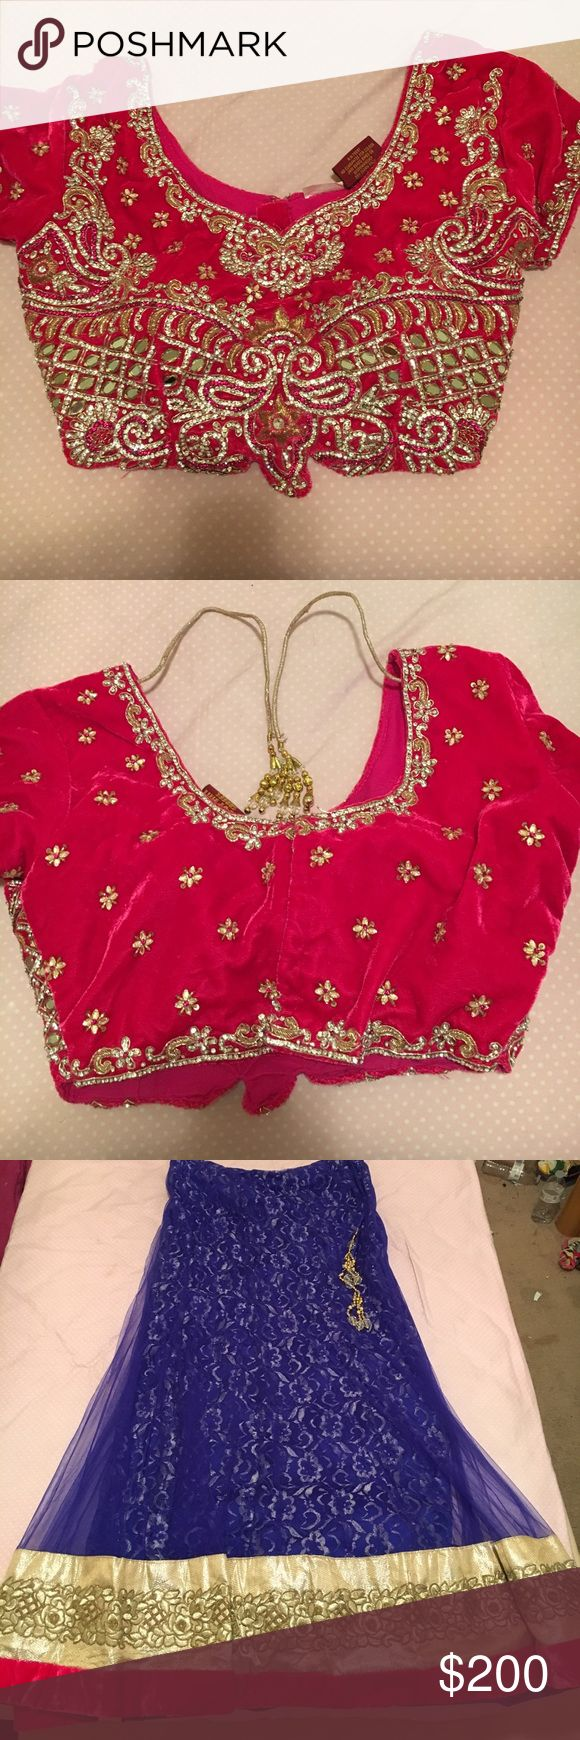 Indian Saree or Sari This is a traditional Indian Saree. Consists of 3 pieces including a completely jeweled pink top, a skirt and an Indian scarf. Only worn once. Size 40 which in the us calculates to a medium. Skirt is adjustable and tightens to anyone with a waist up to 40 inches Dresses Wedding